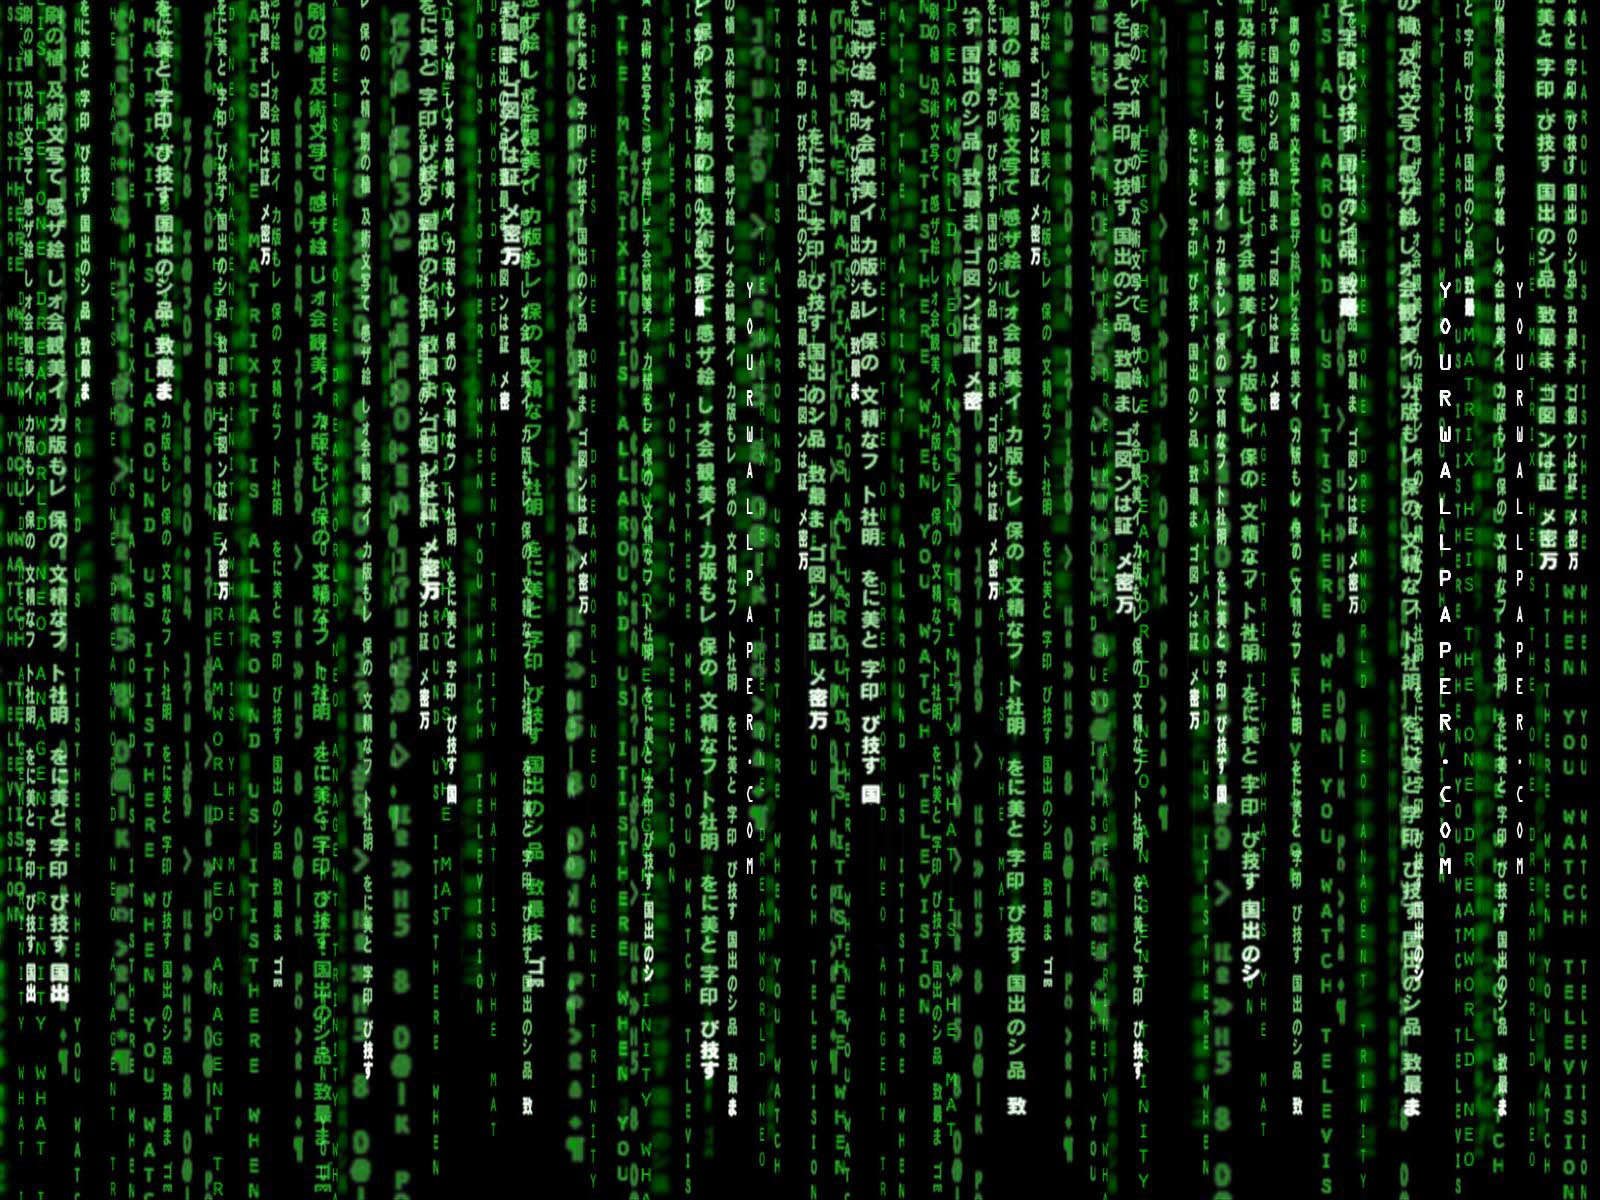 Matrix film like effects using c programme punkbite if you seen that movie you may know of its famous effects that is green characters pouring down to the black background screen baditri Images